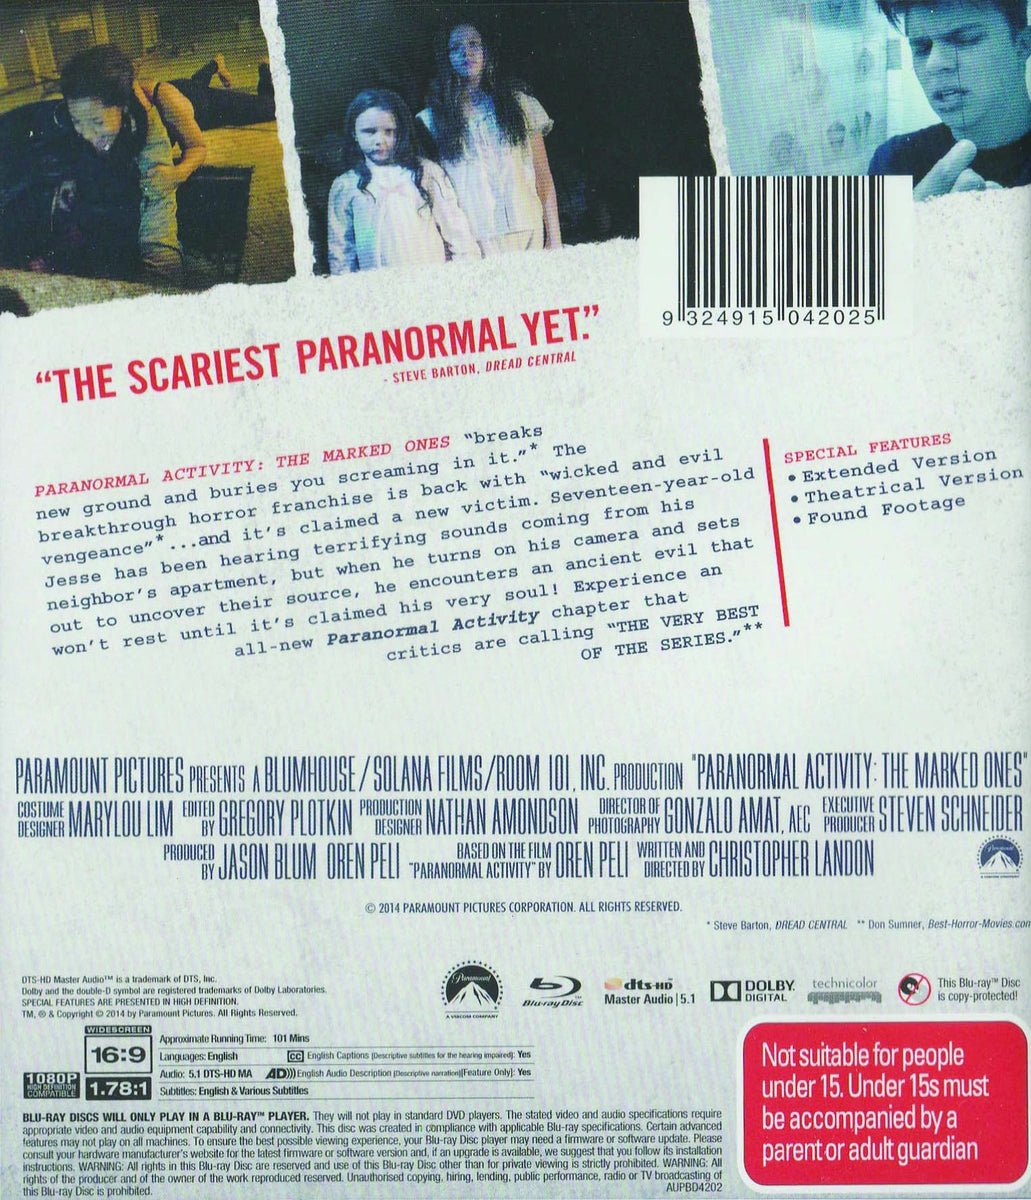 PARANORMAL ACTIVITY: MARKED ONES (EXTENDED EDITION)